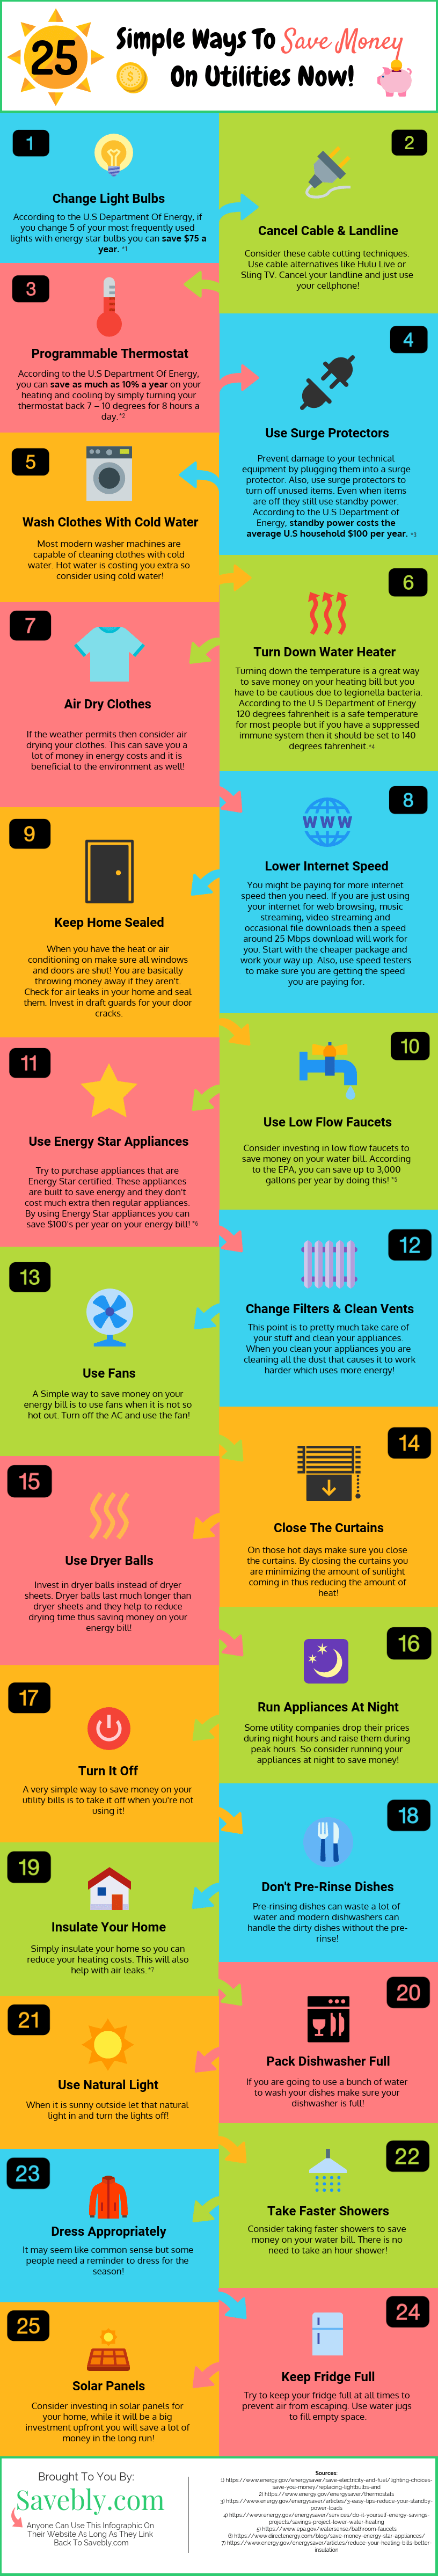 Check out this awesome infographic on how to save money on utilities! These are amazing money saving tips so you can save money easily. These are save money on utilities tips so you should check it out! Learn these save money tips and learn to save money on electric bill! These save money tips will help you to stay in budget and pay off debt with the extra money! Save money on your utility bills with these money saving tips! #savemoney #money #budget #cash